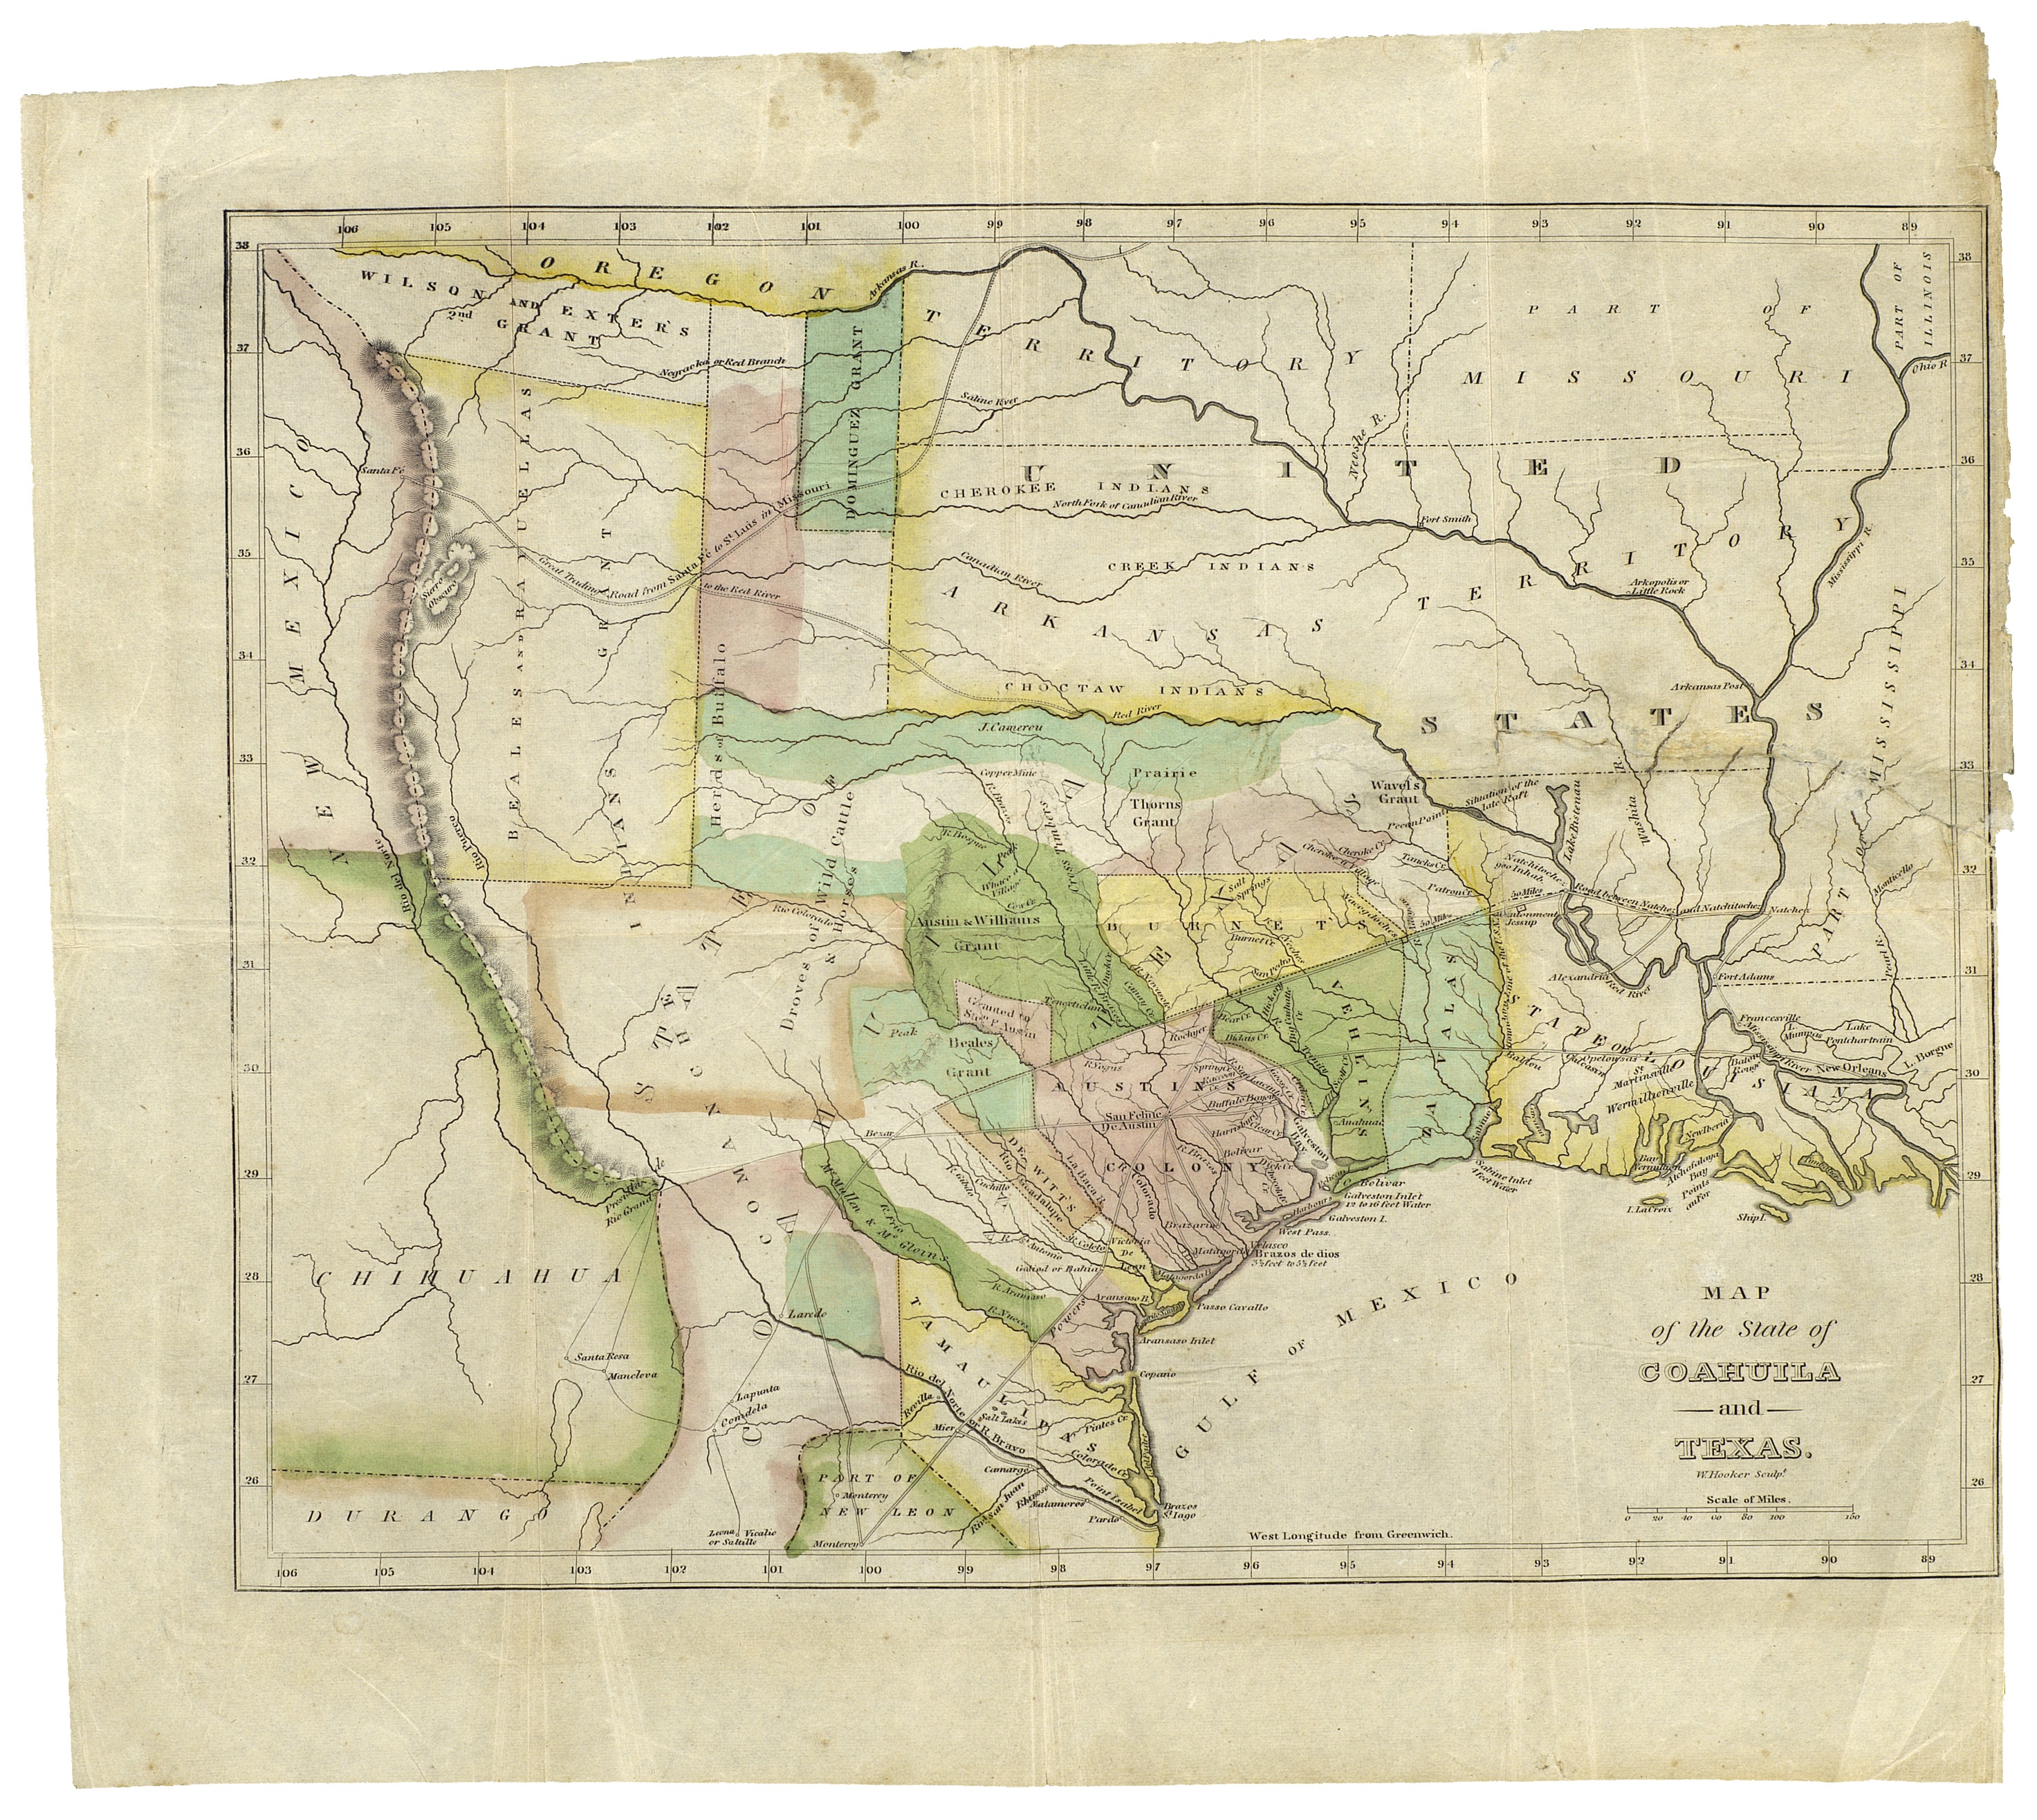 190Th Anniversary Of The Constitution Of The Free State Of Coahuila - Texas Land Office Maps